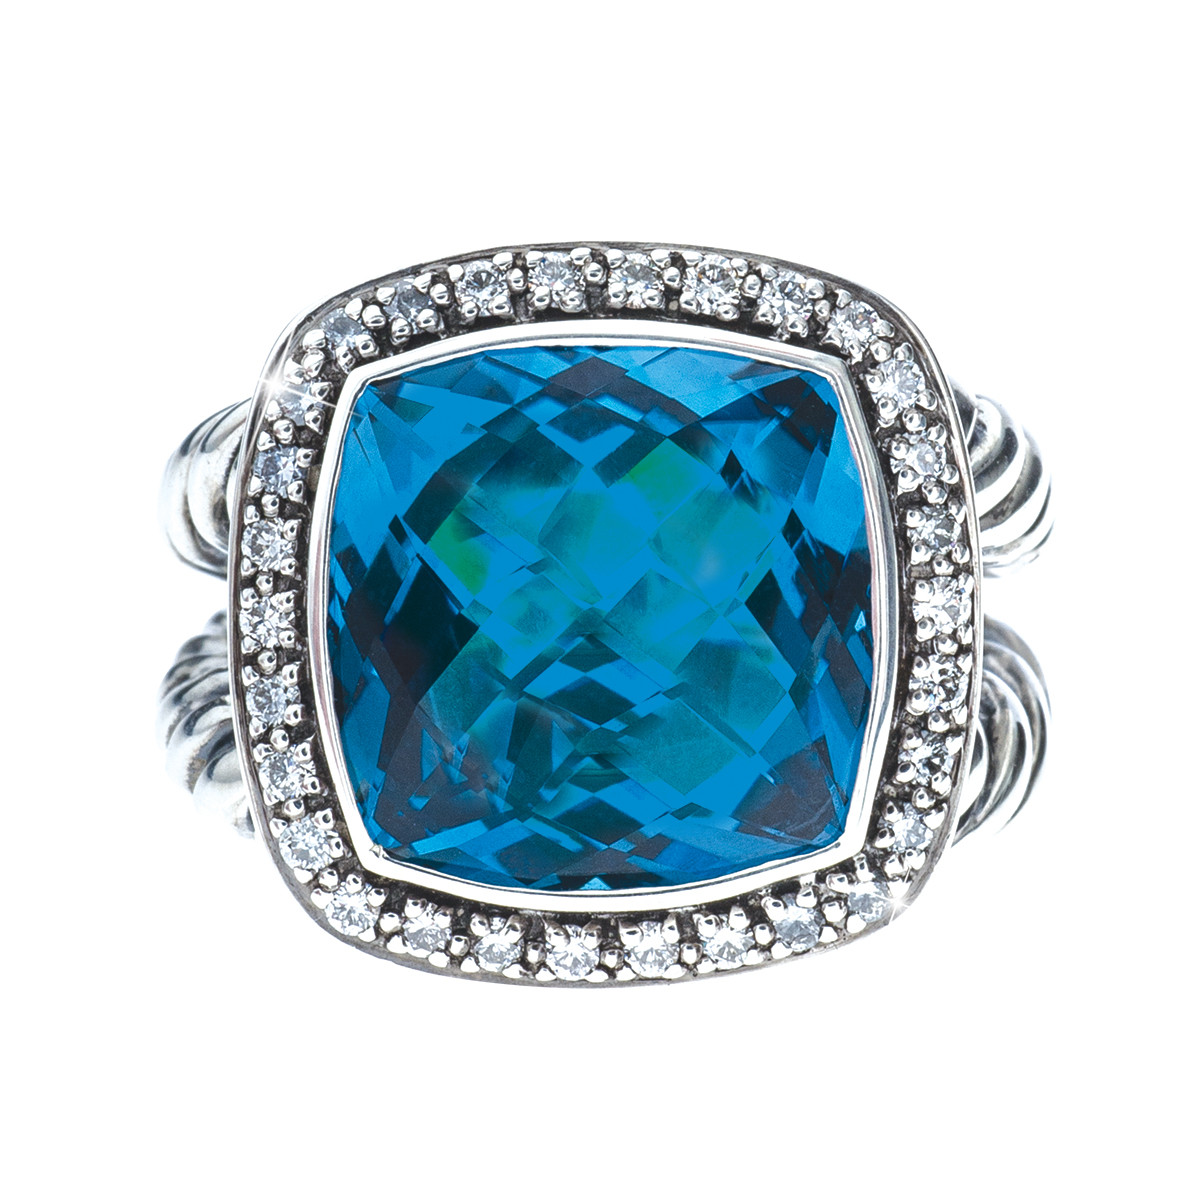 Vintage David Yurman Blue Topaz and Diamond Ring